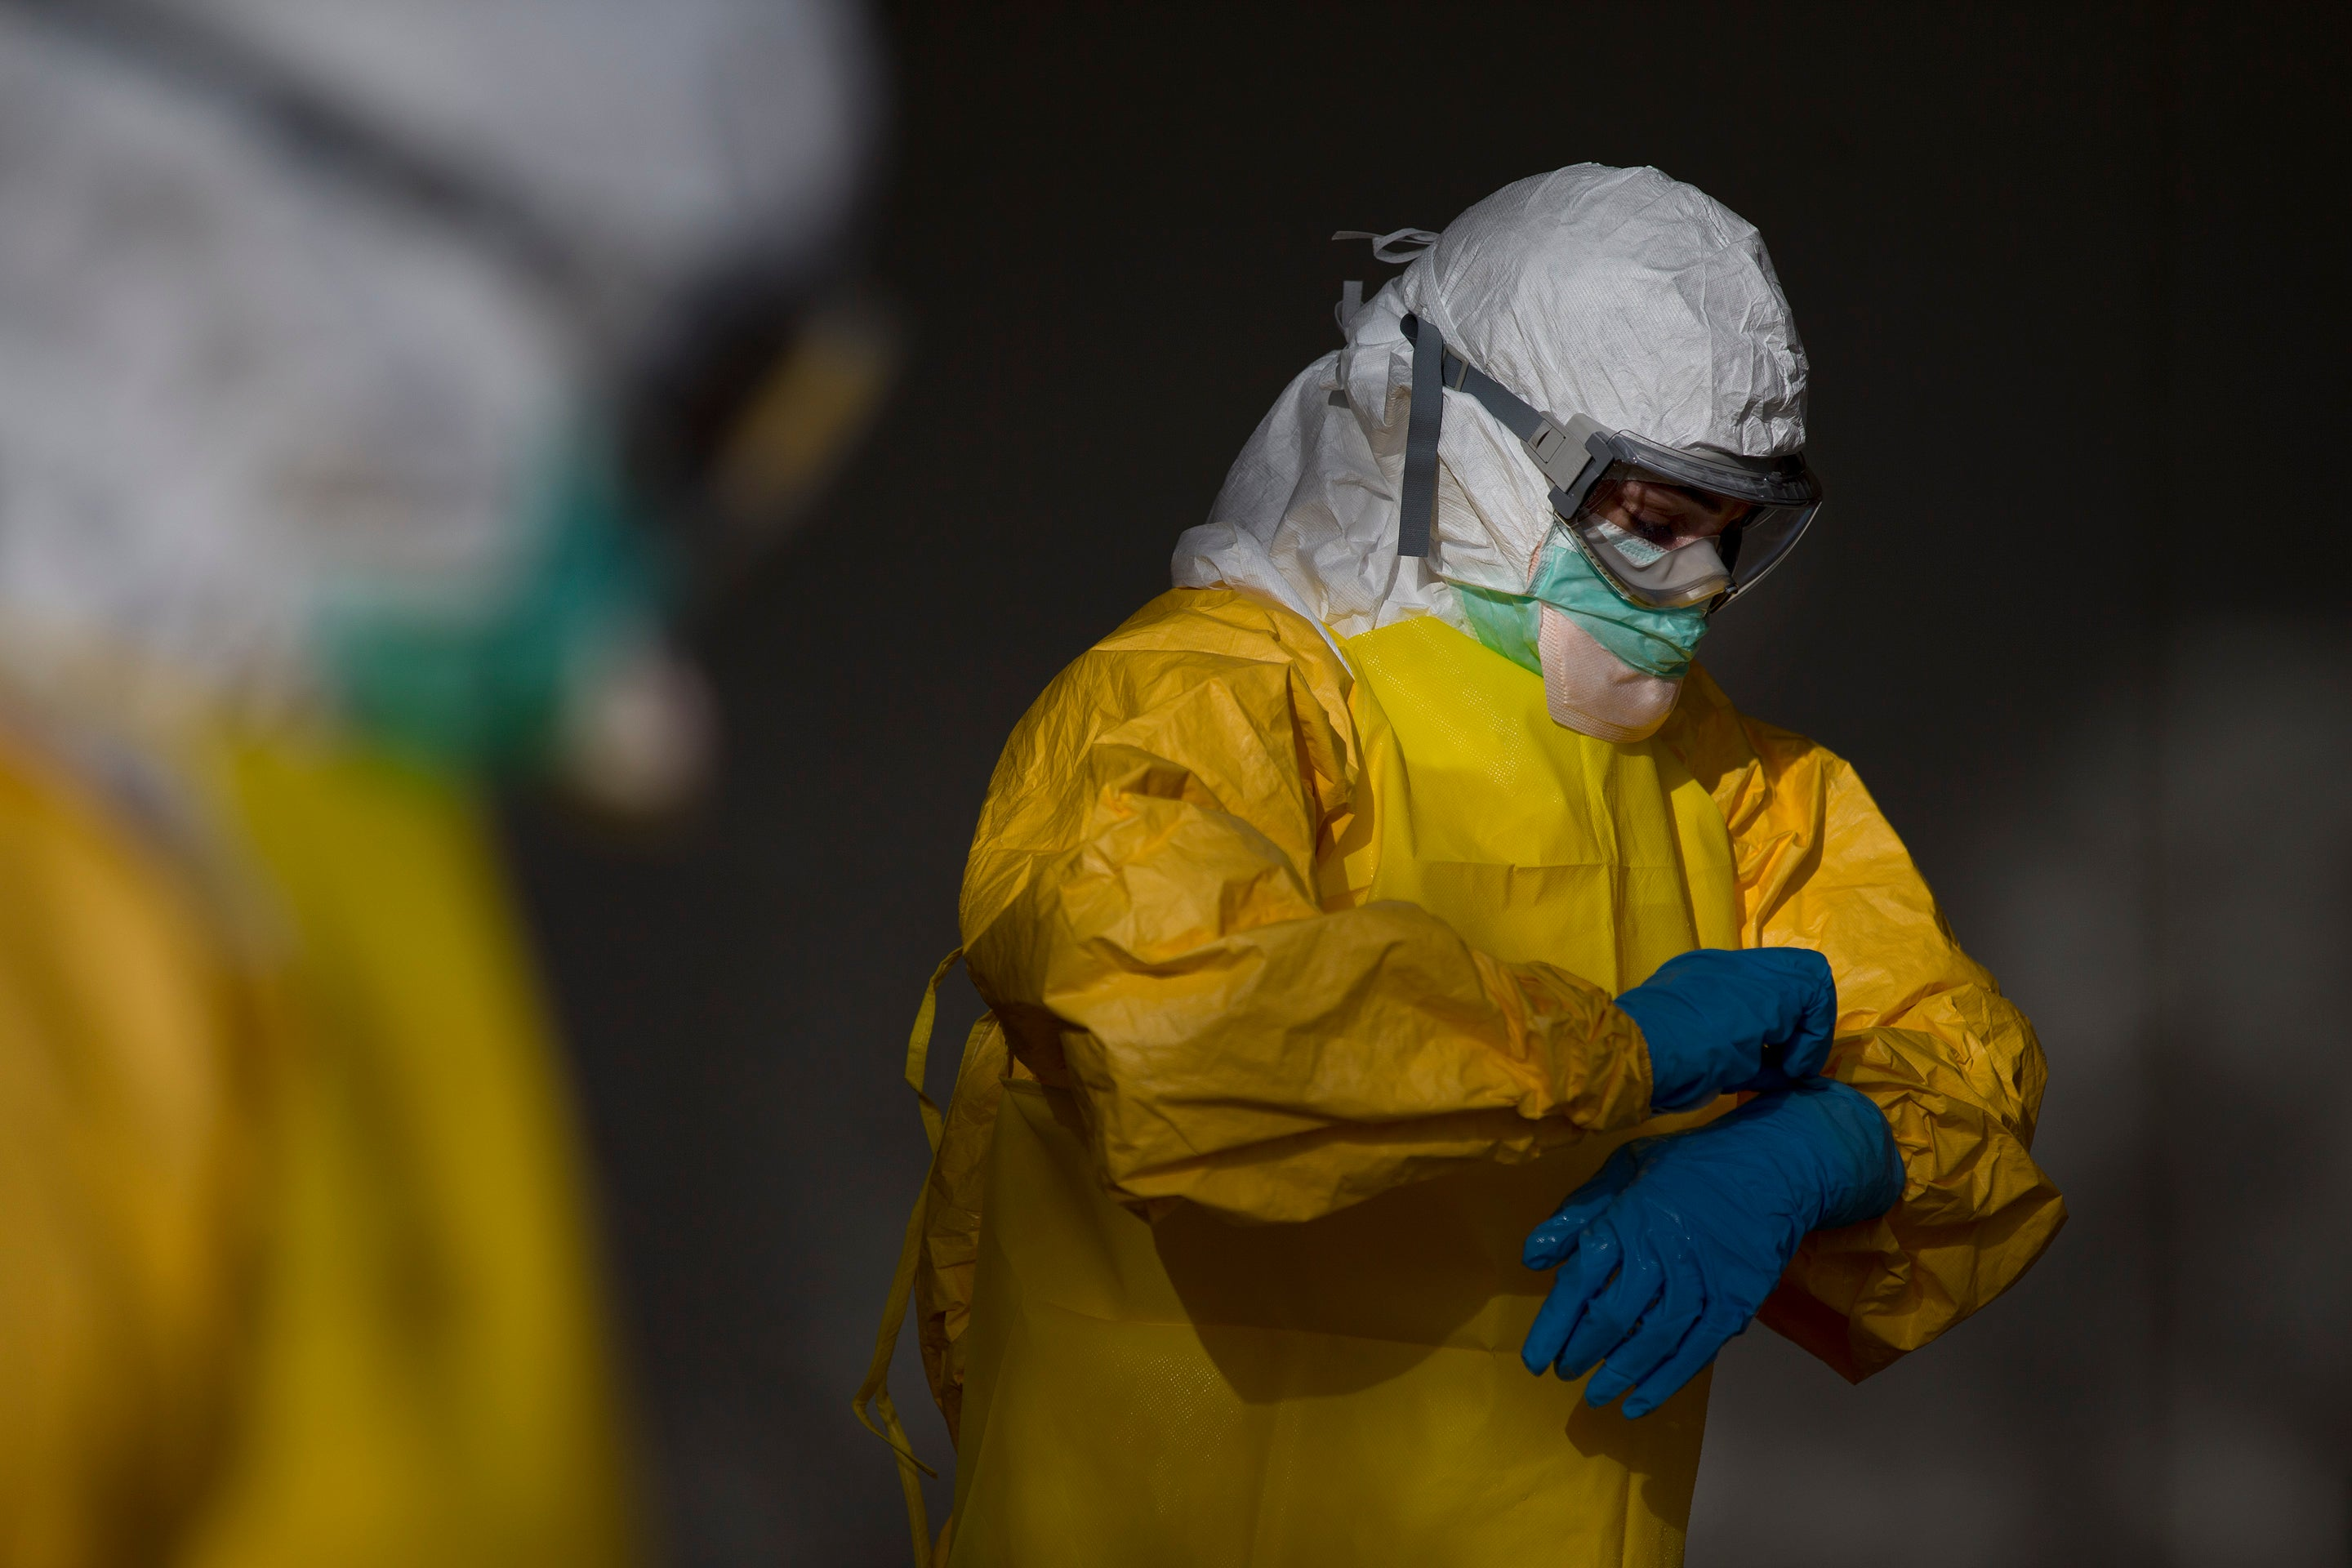 The Race to Build a Better Suit For Ebola Aid Workers